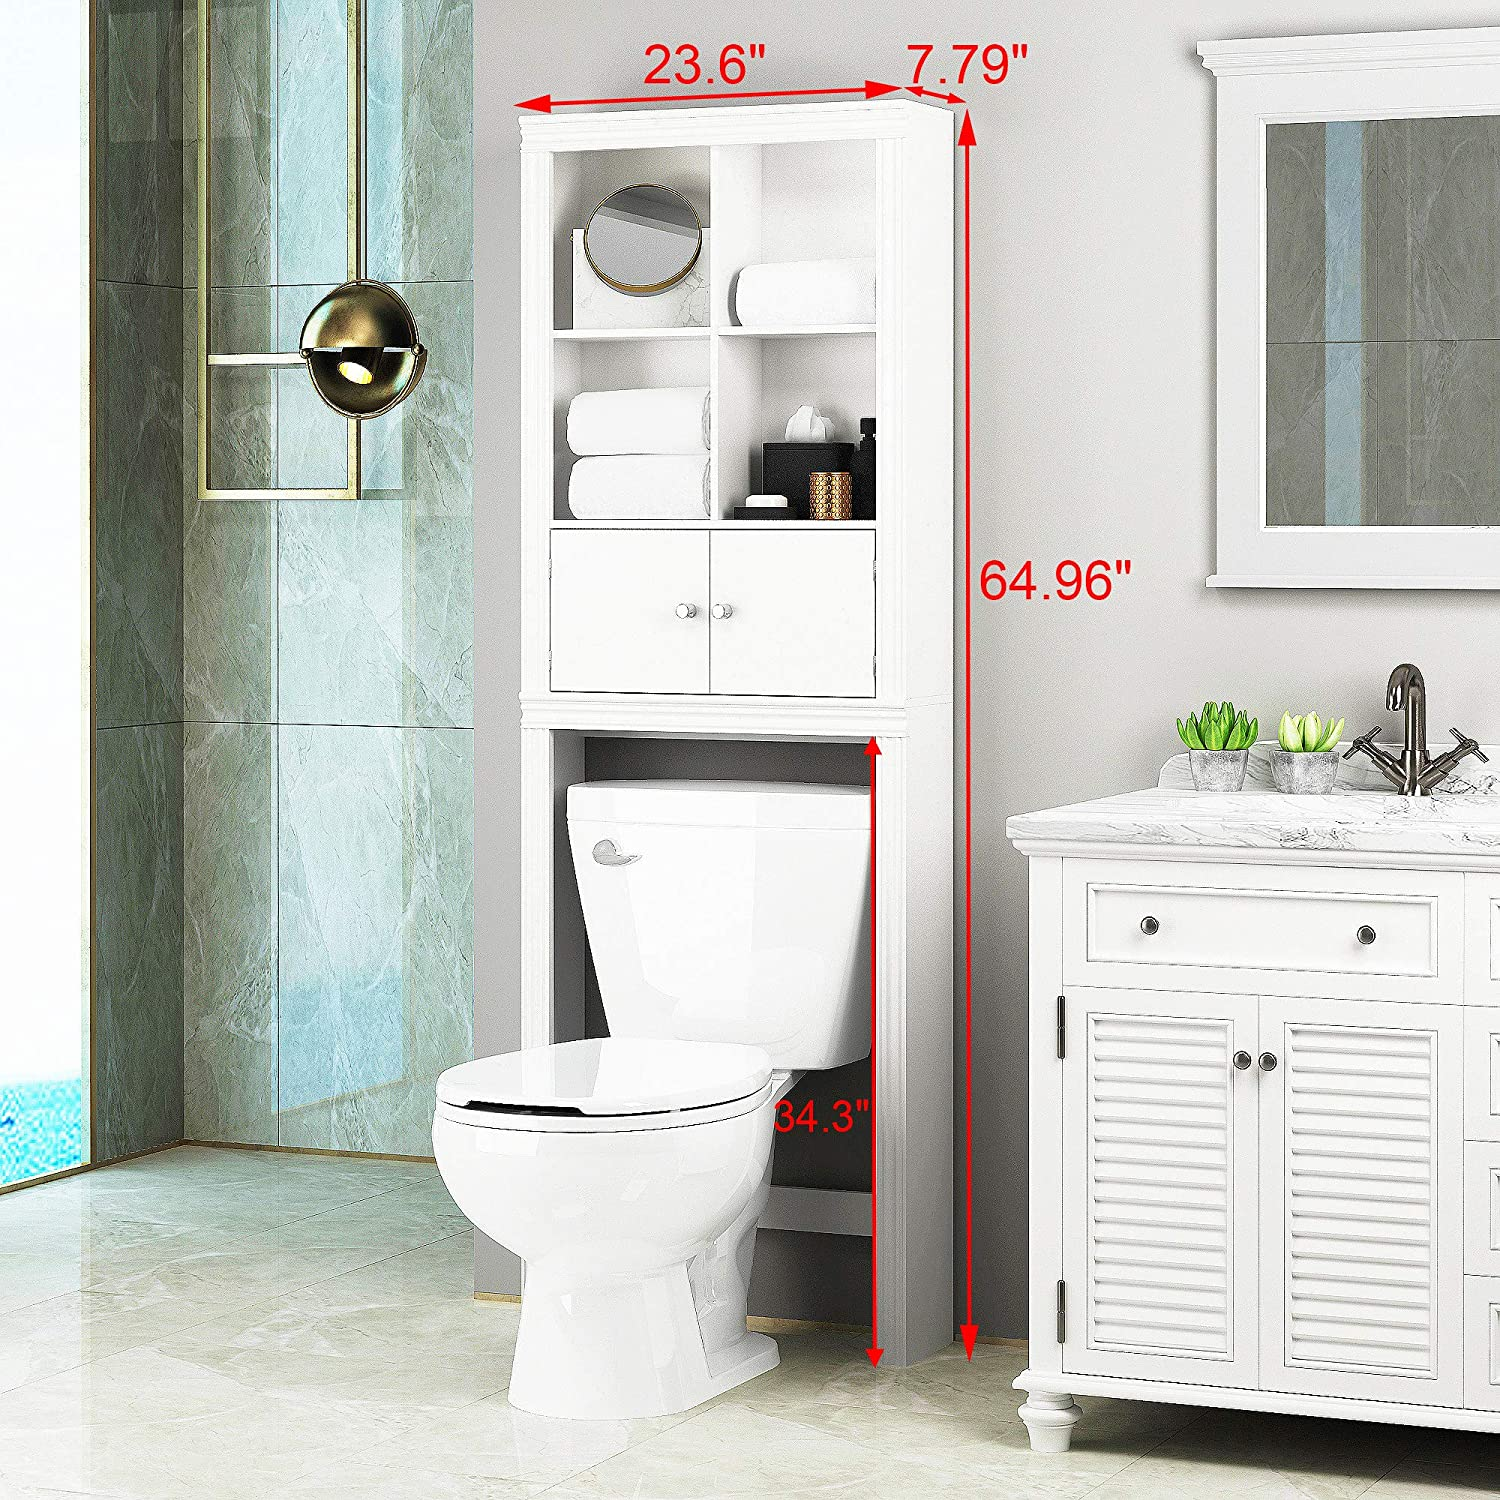 Spirich Home Bathroom Shelf Over The Toilet Bathroom Cabinet Organizer Over Toilet Space Saver Cabinet Storage White